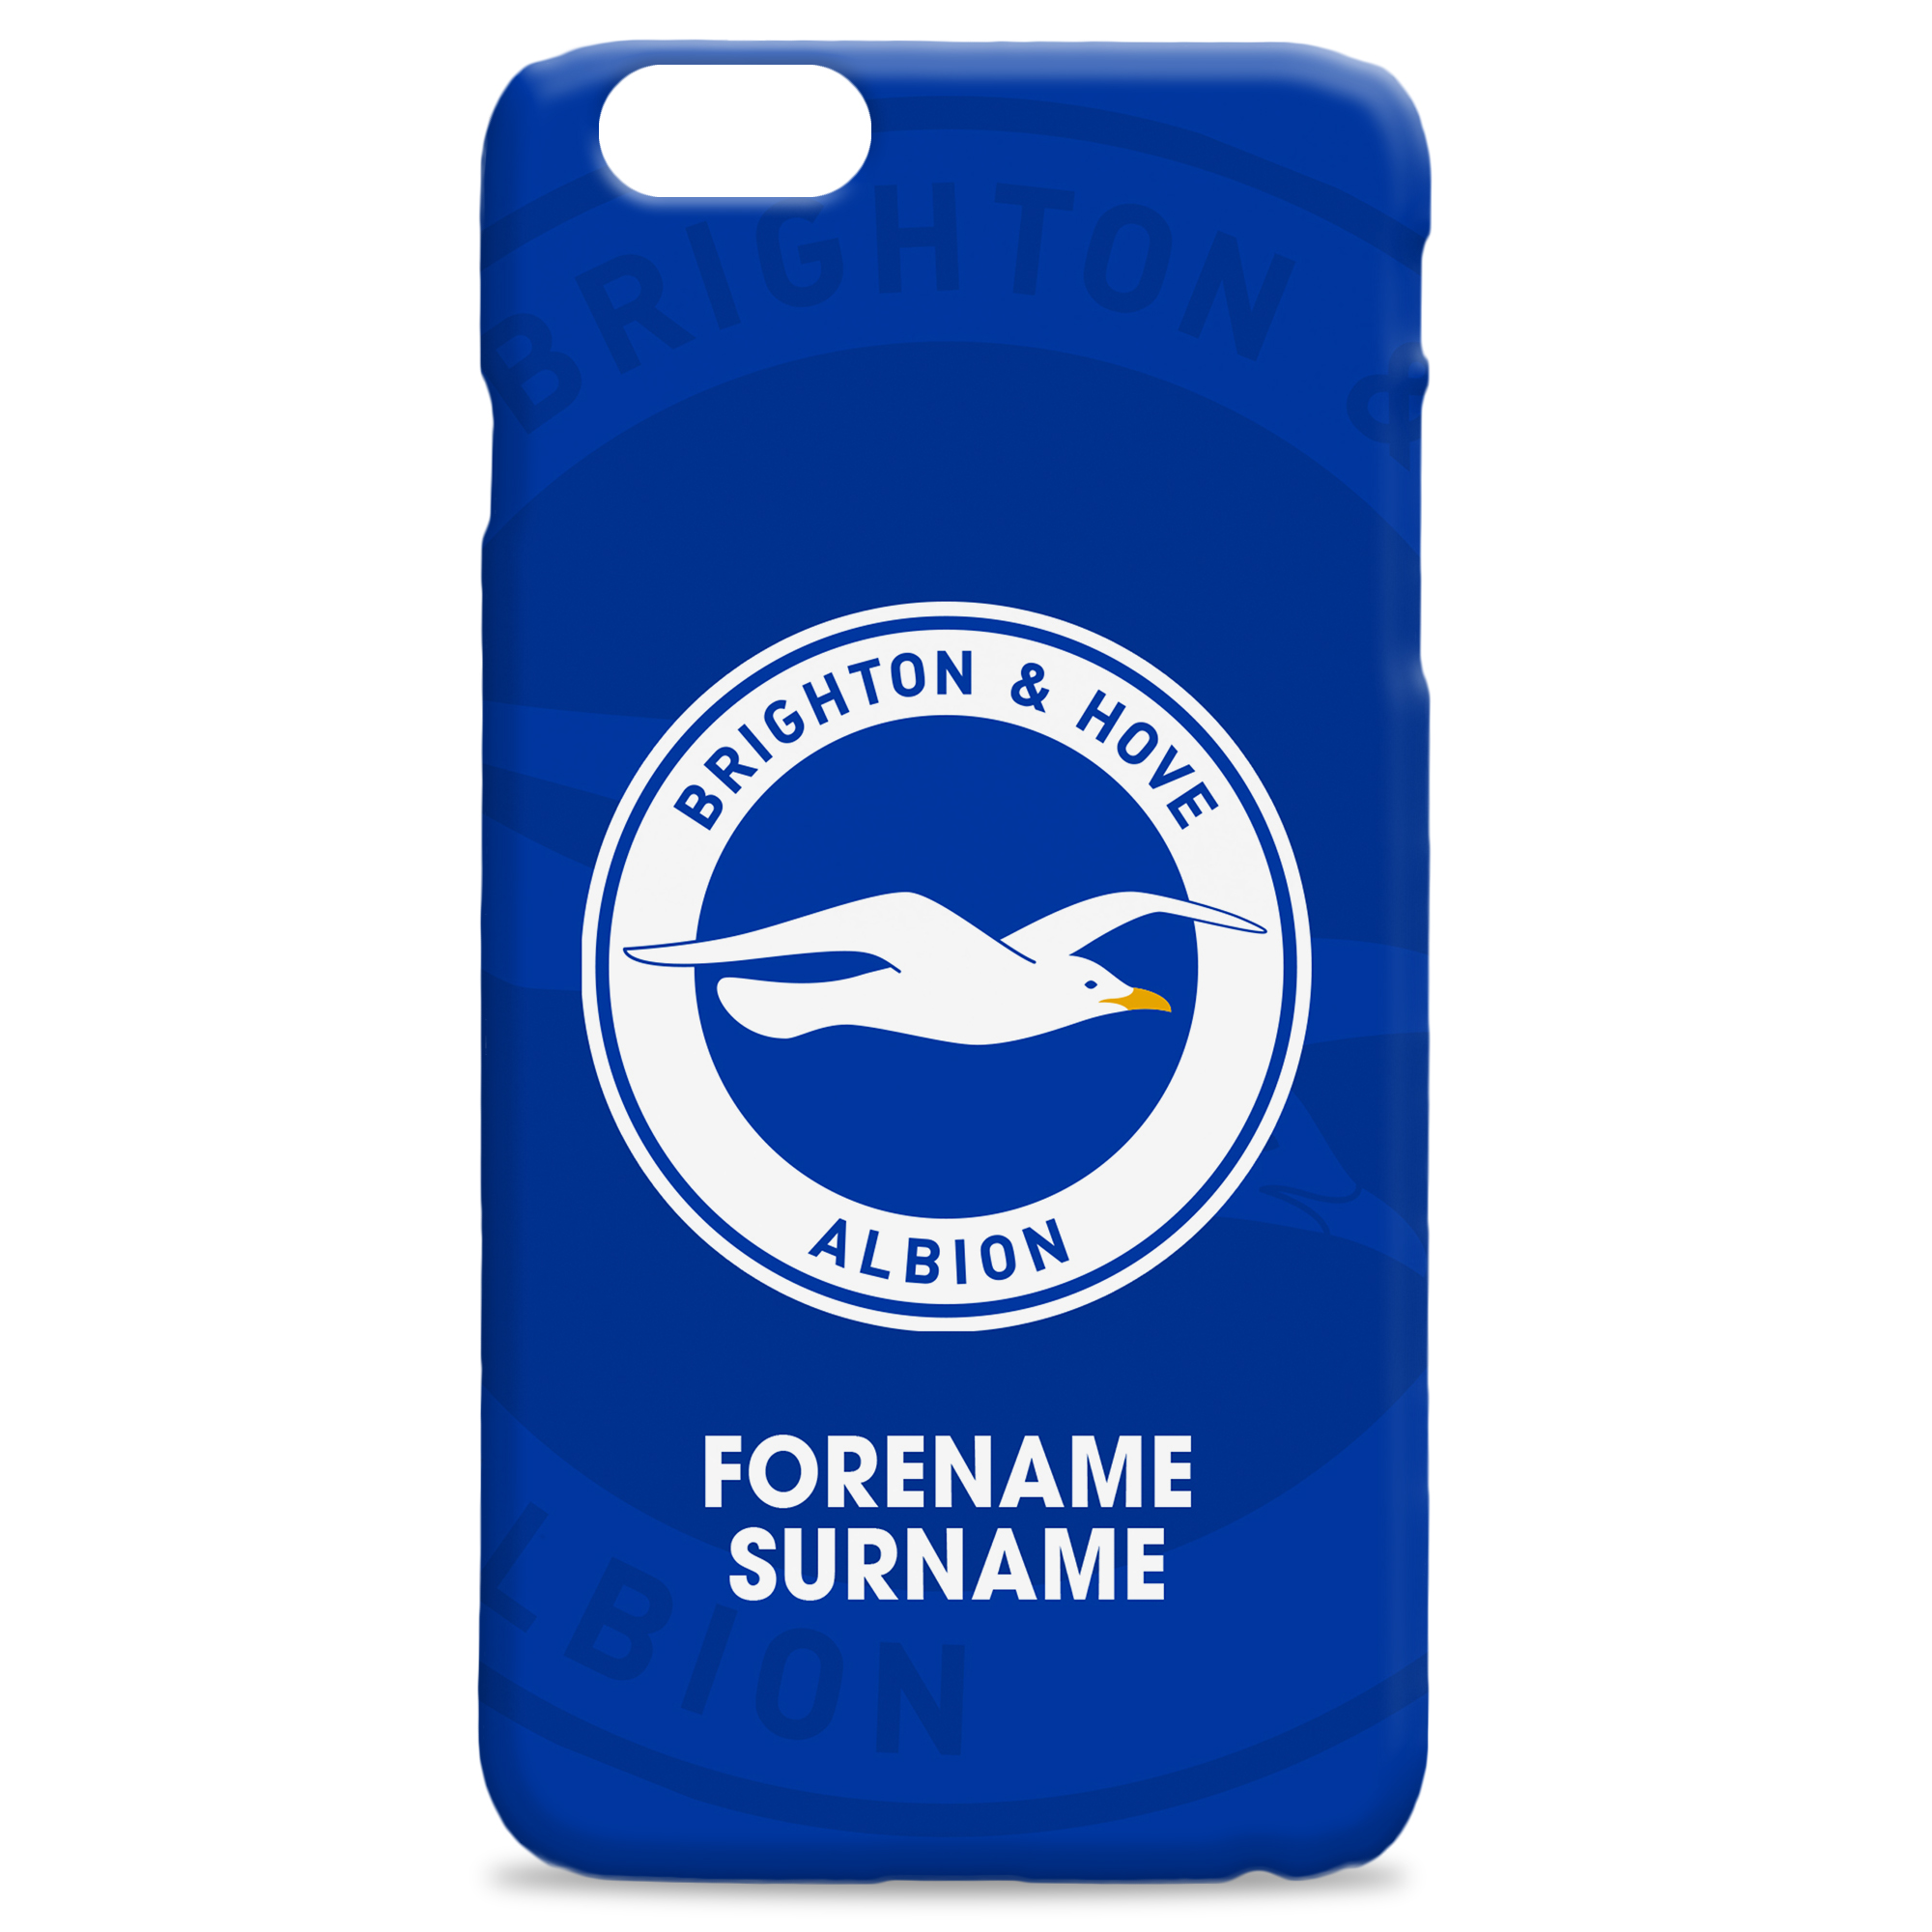 Brighton & Hove Albion FC Bold Crest Hard Back Phone Case